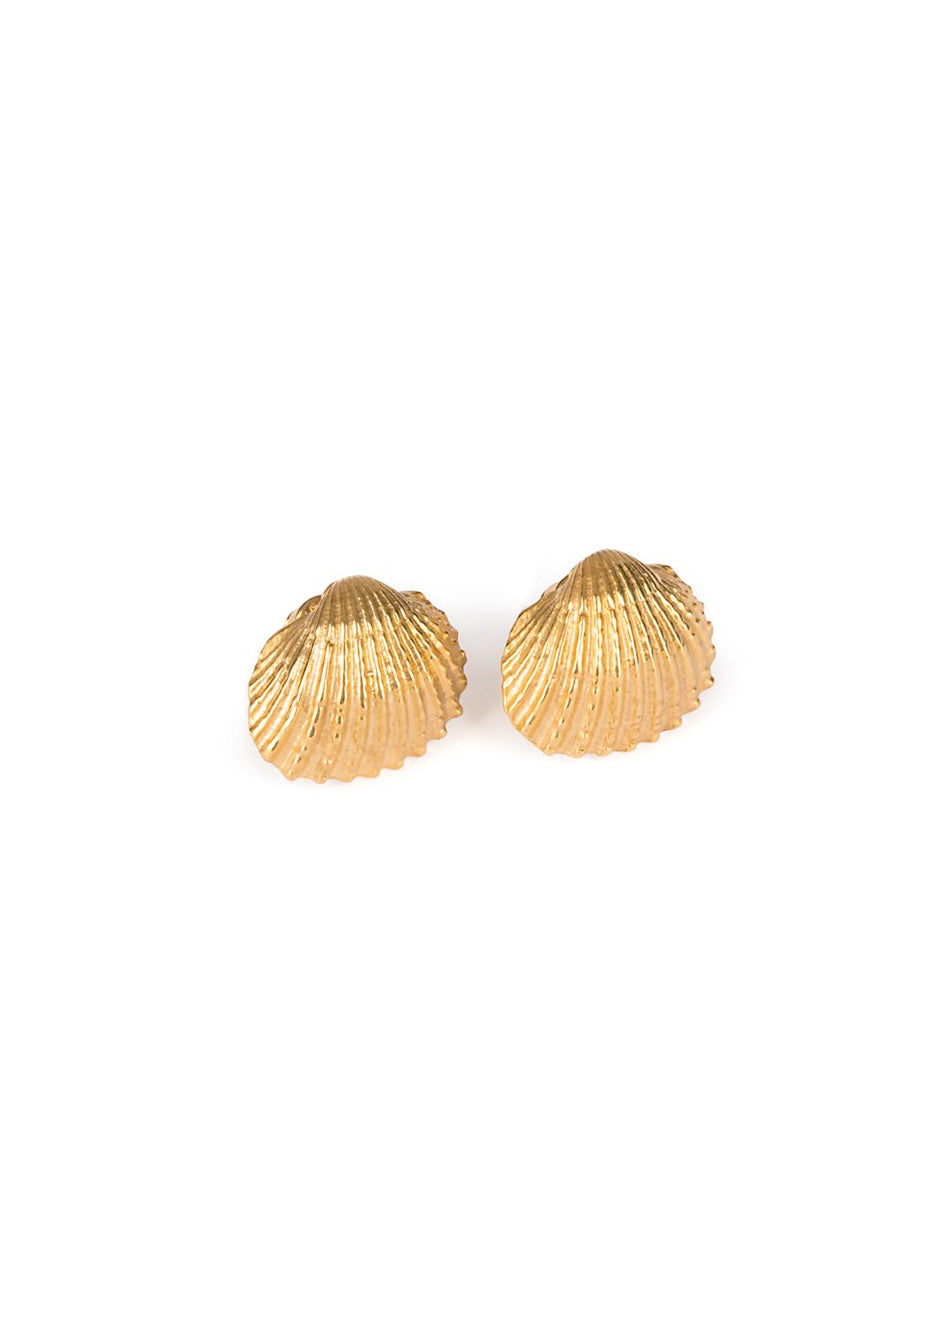 Small Beach Shell Earrings